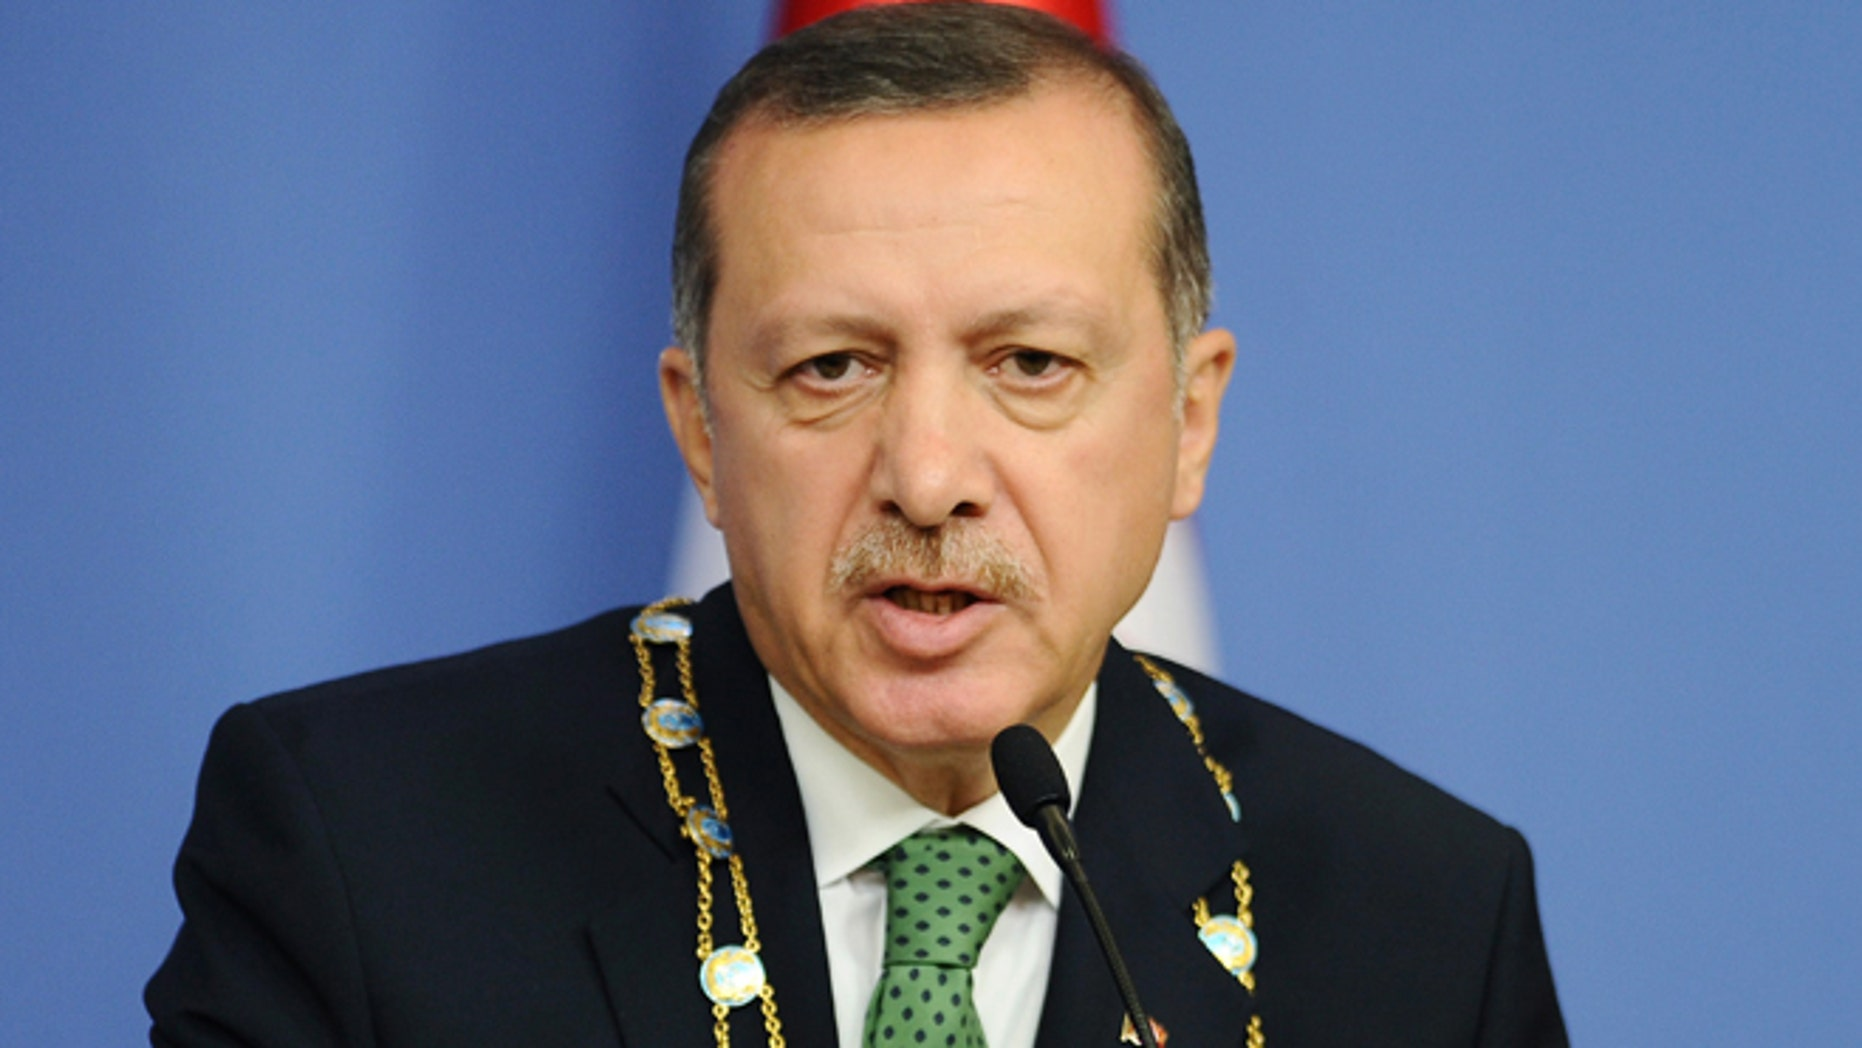 Oct. 11: Turkey's Prime Minister Recep Tayyip Erdogan speaks during a news conference in Ankara.